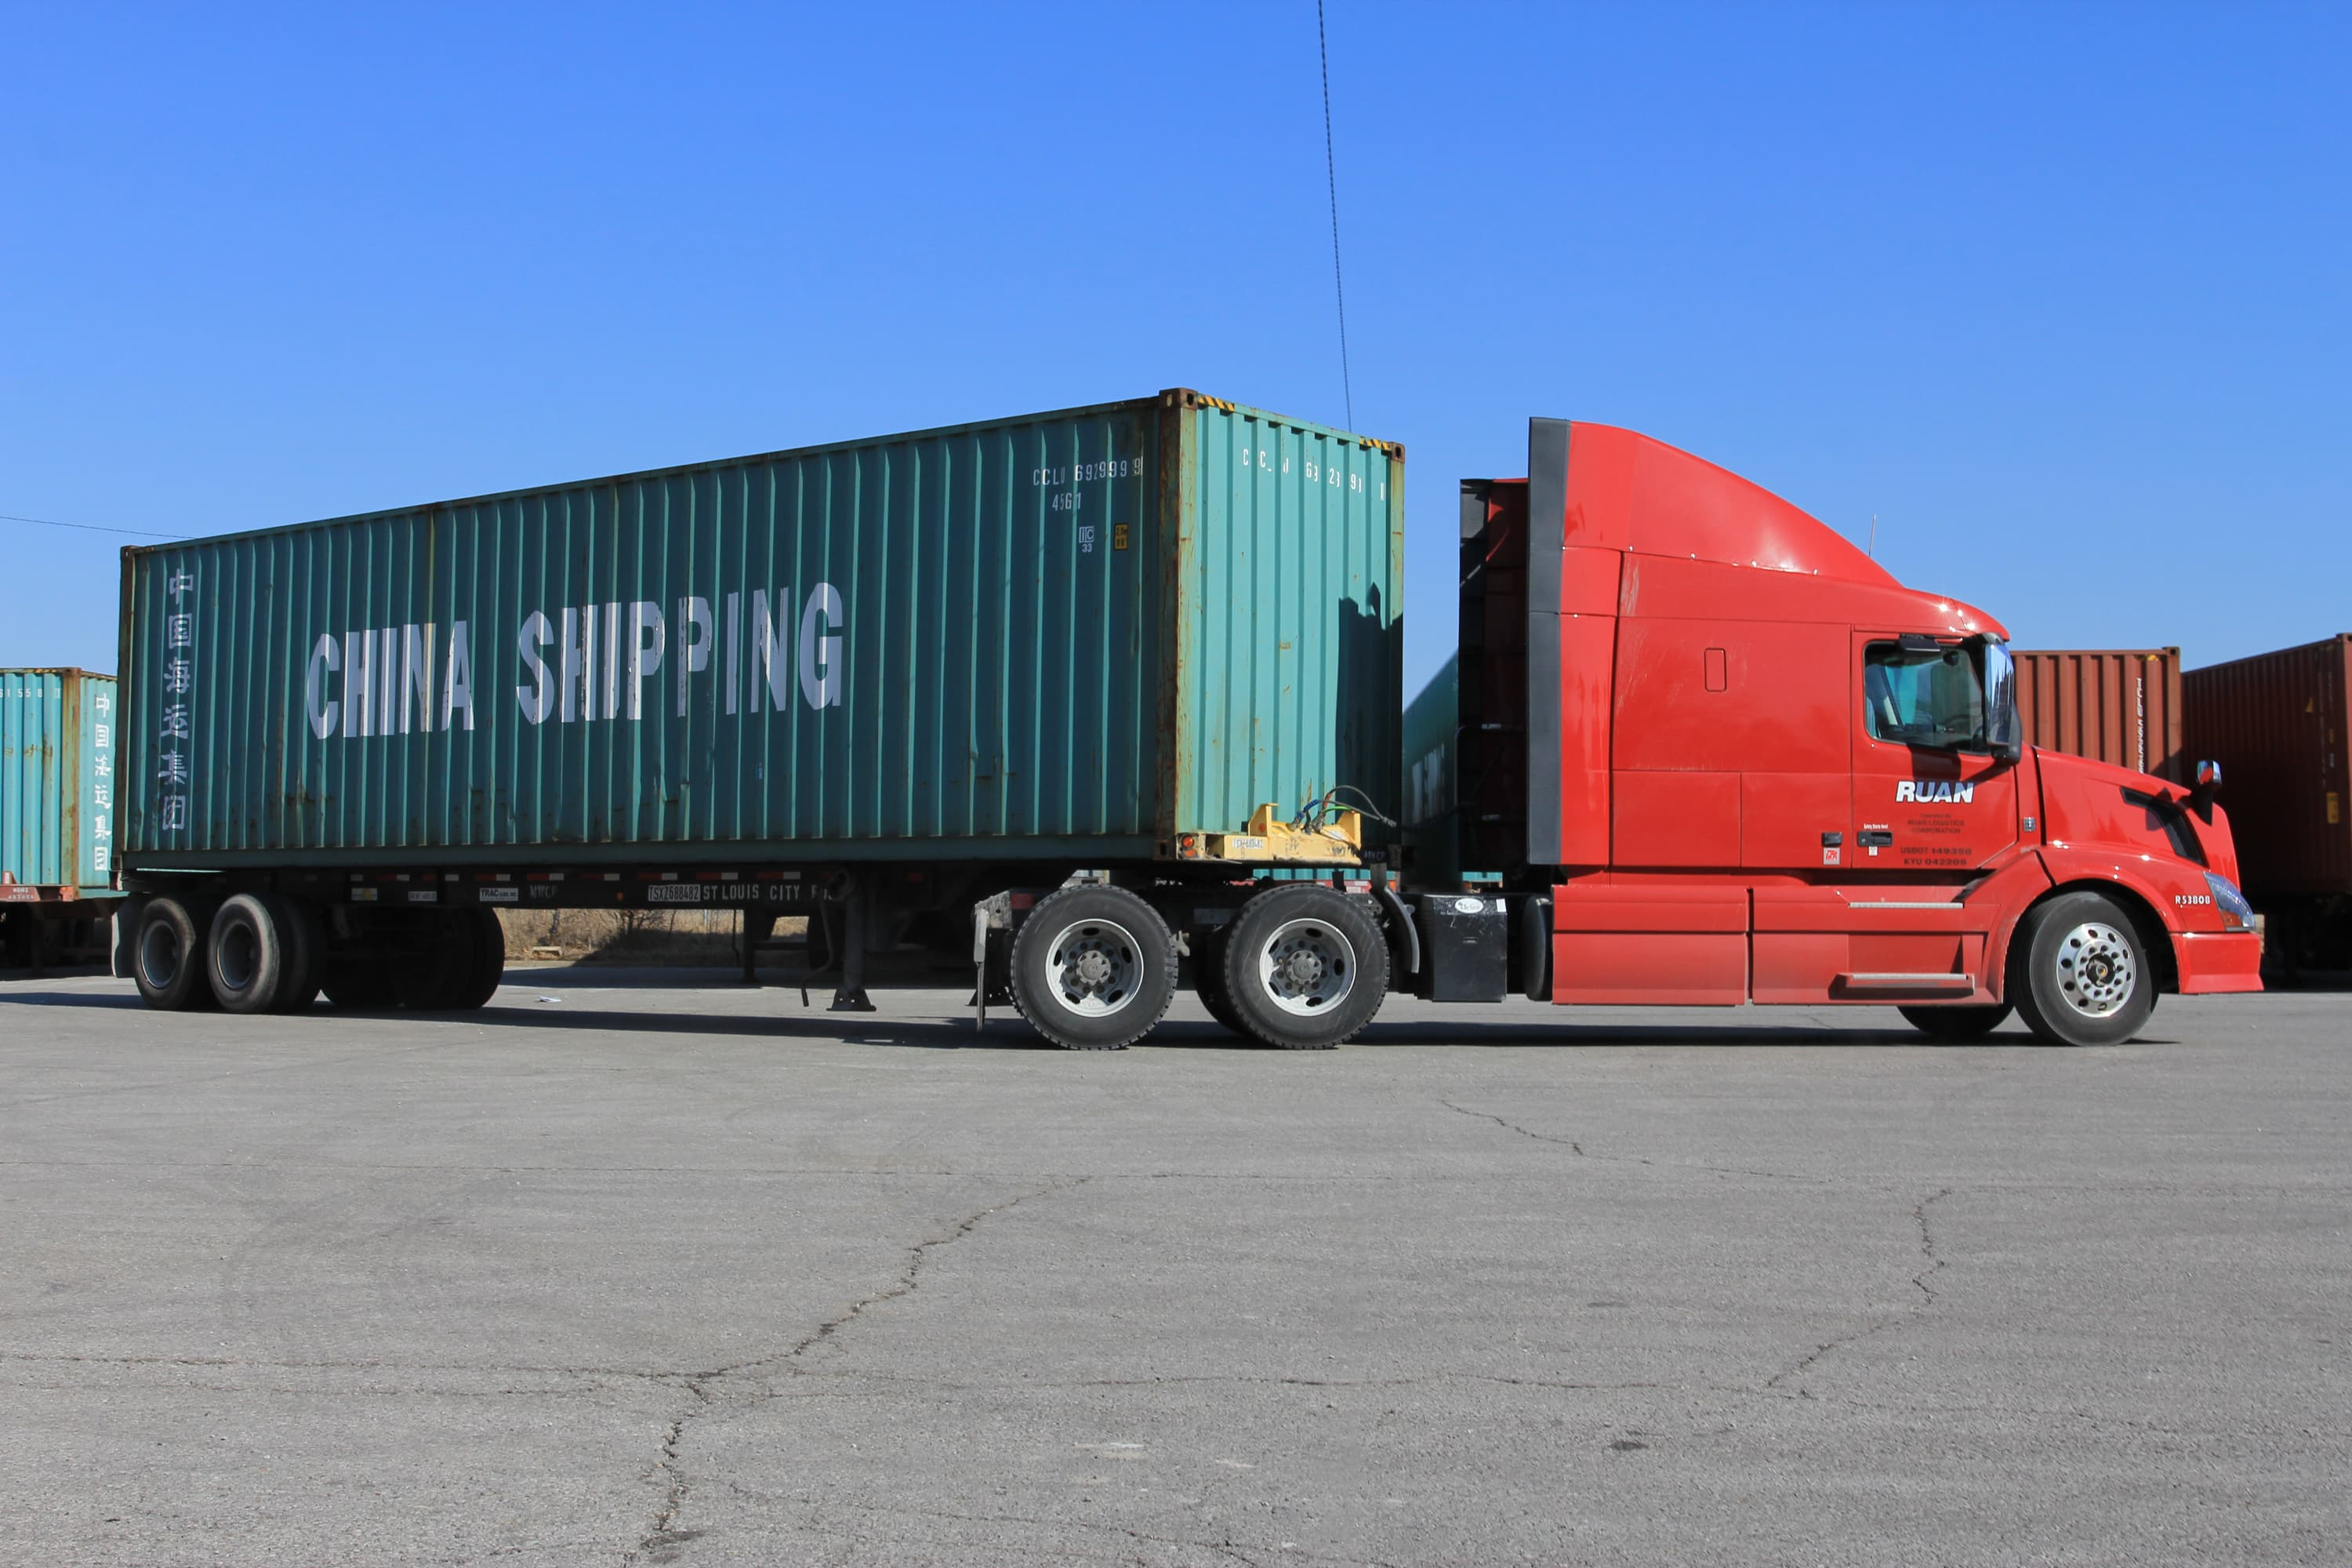 Investing in transports intermodal part of freight business is flourishing